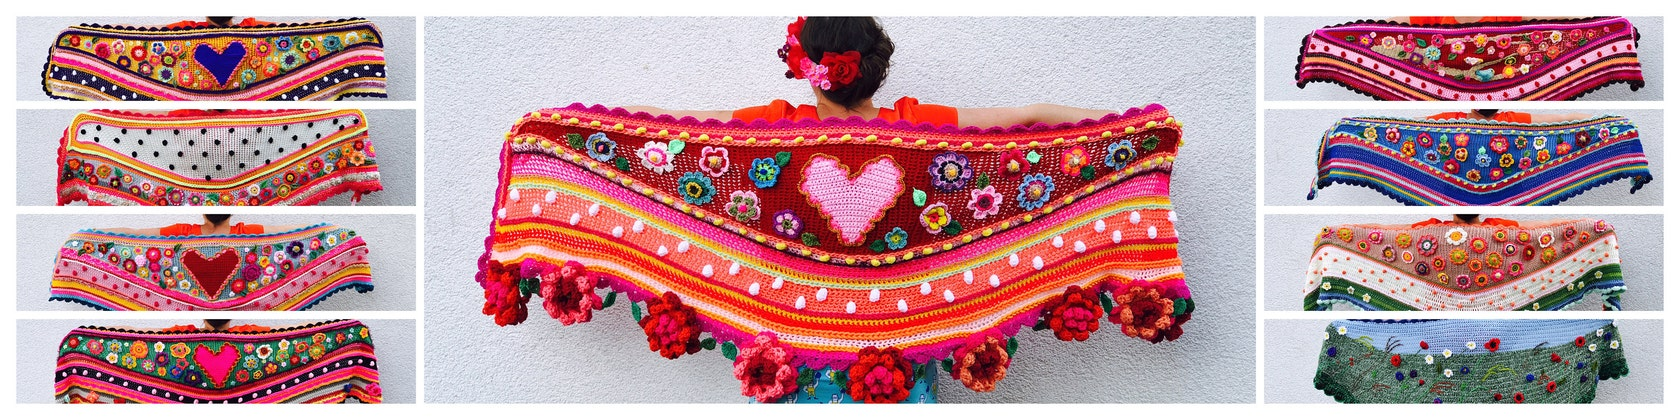 Creative Crochet Artist By Pollevie On Etsy